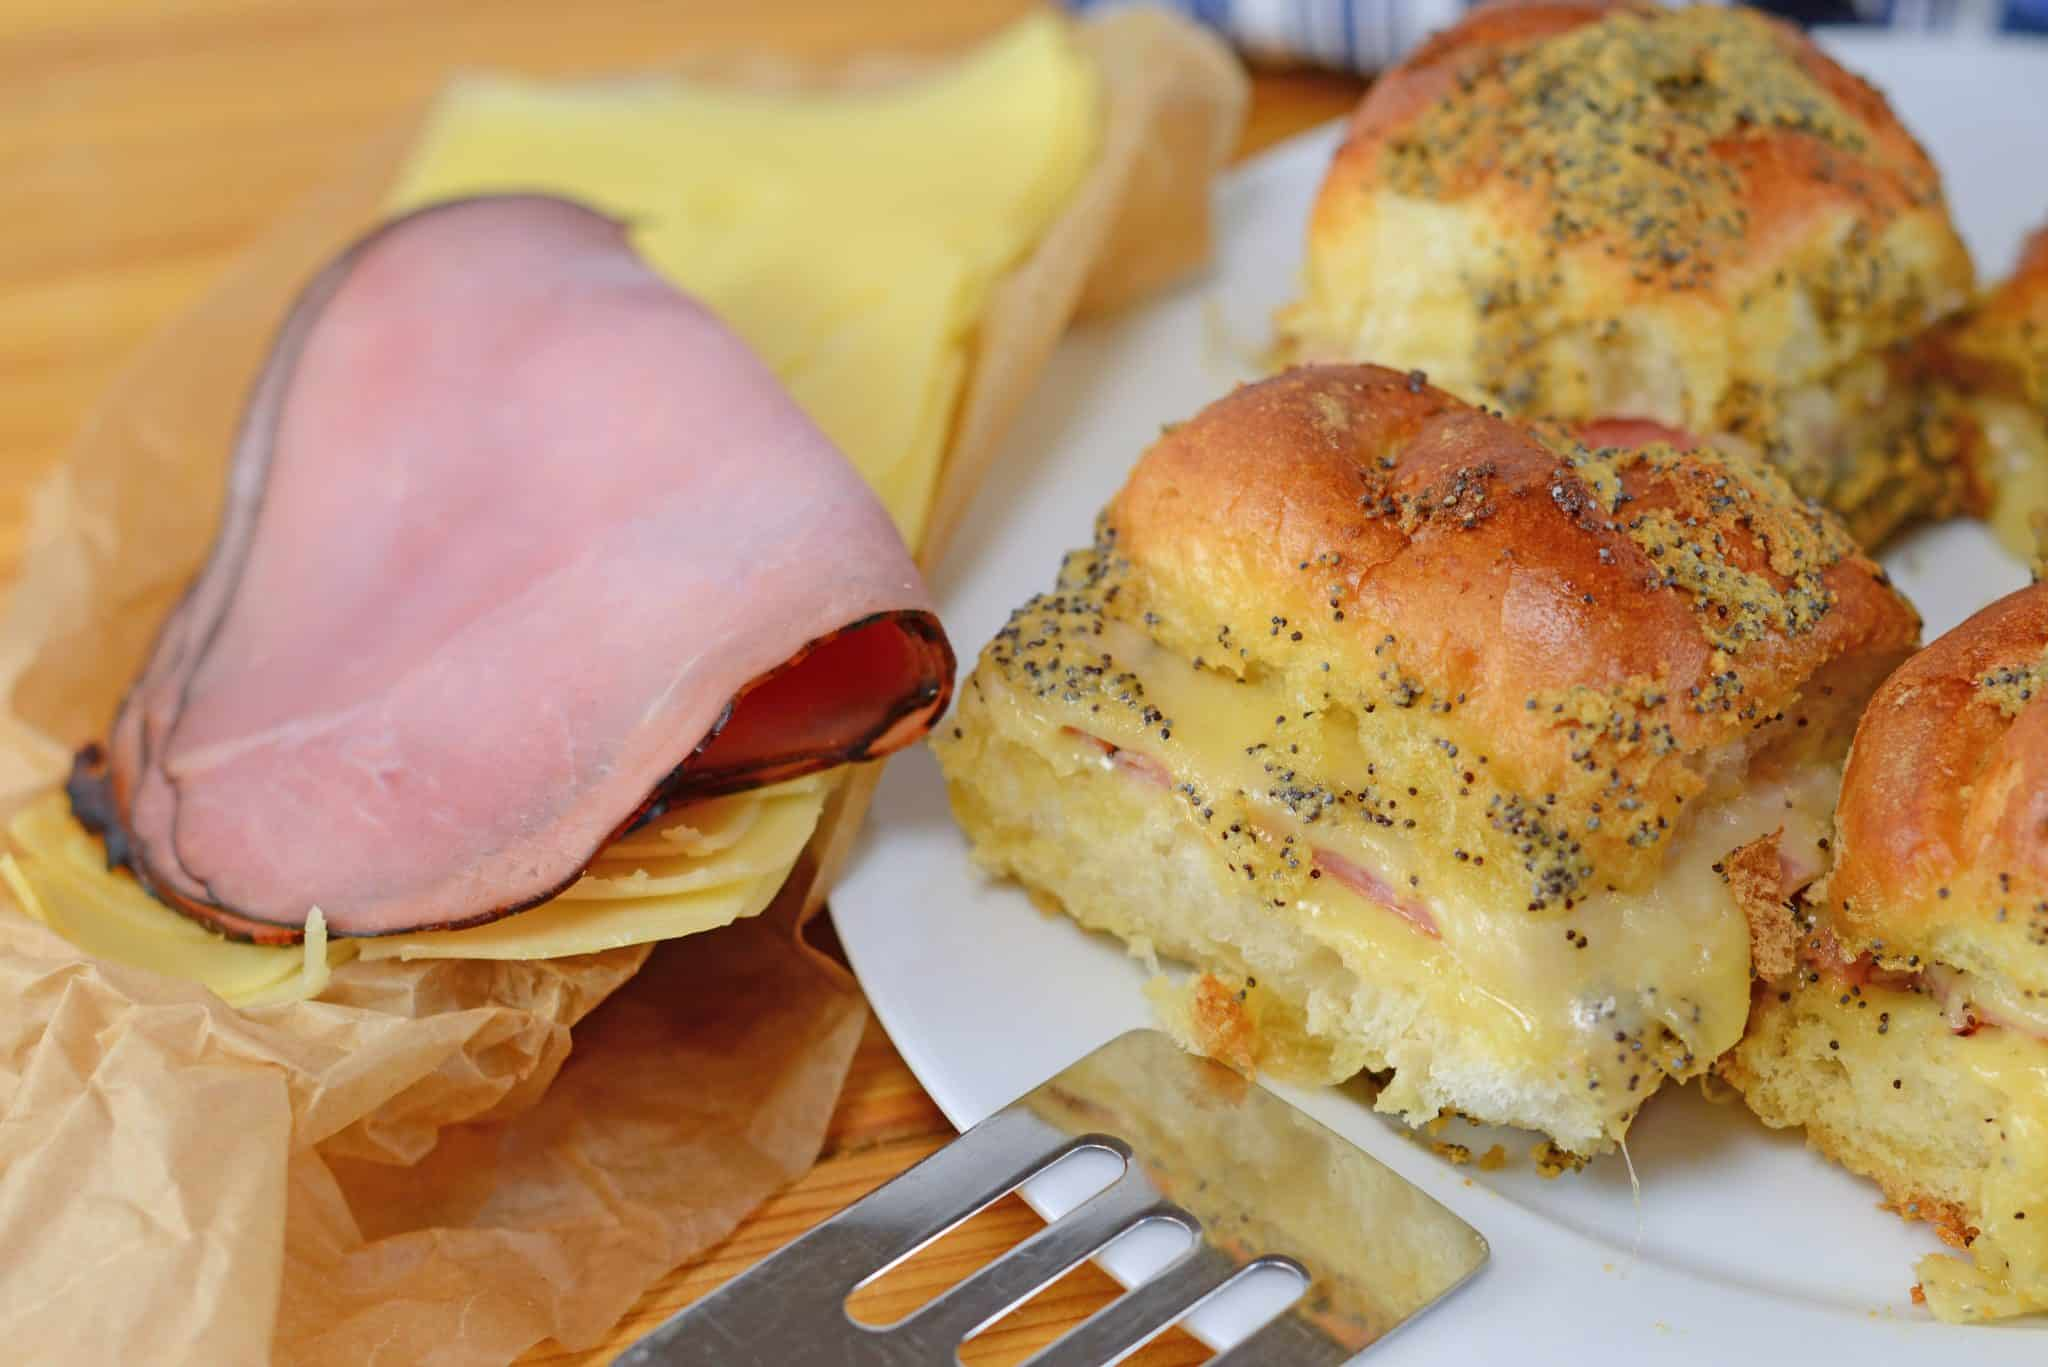 Ham and cheese slider sandwich recipes on a white dish with a spatula